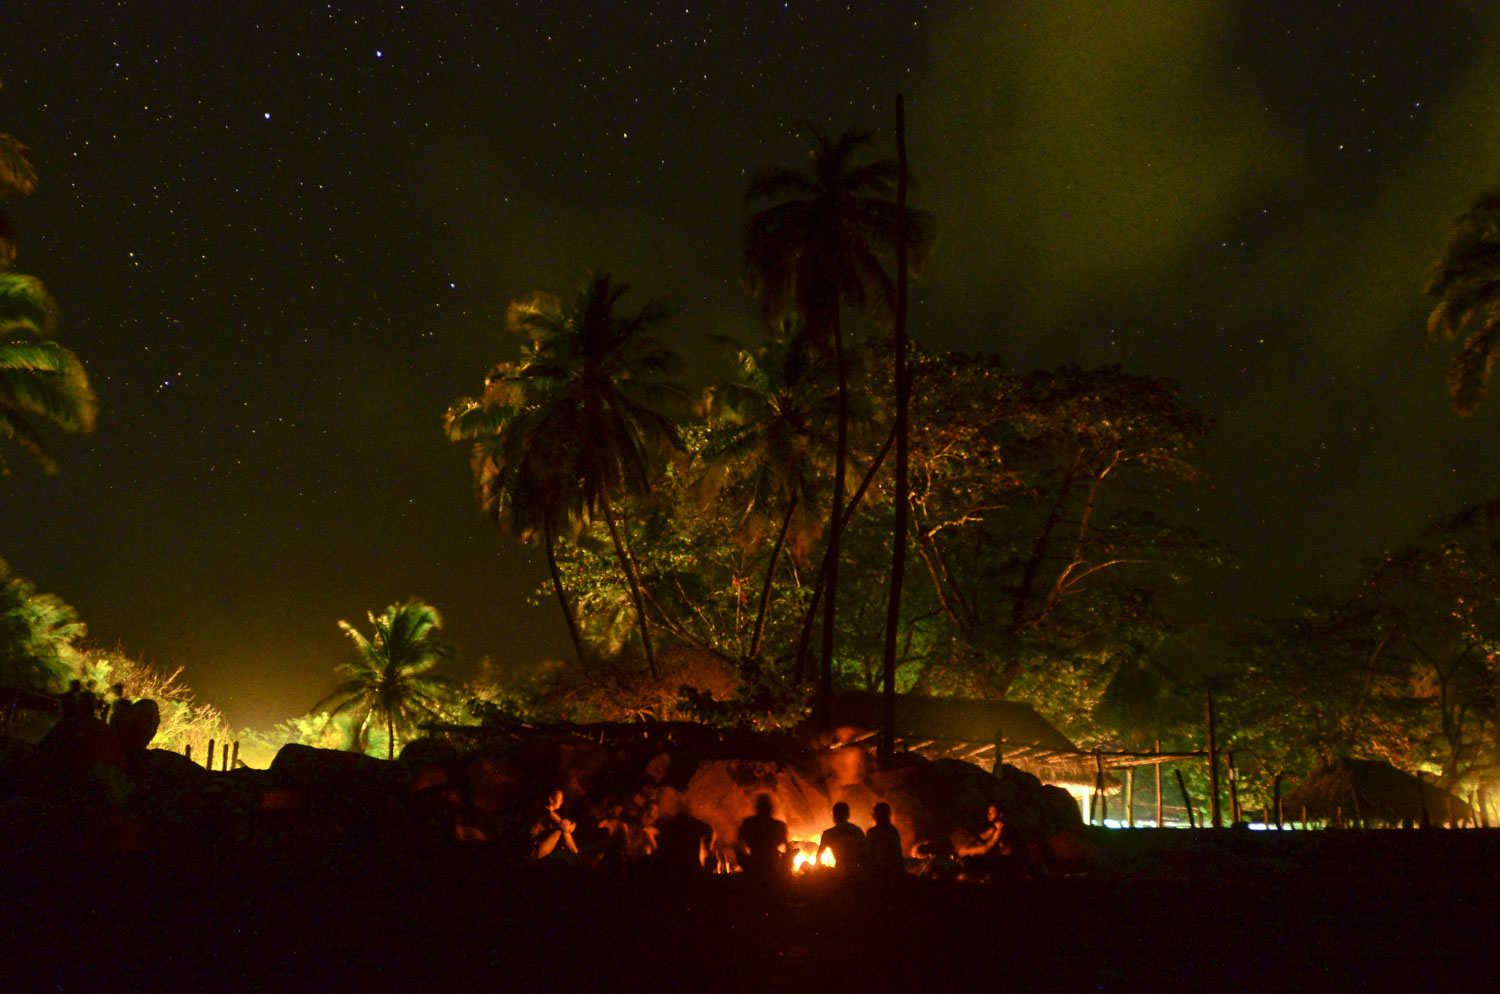 Campfires and music under the stars in Jiquilillo